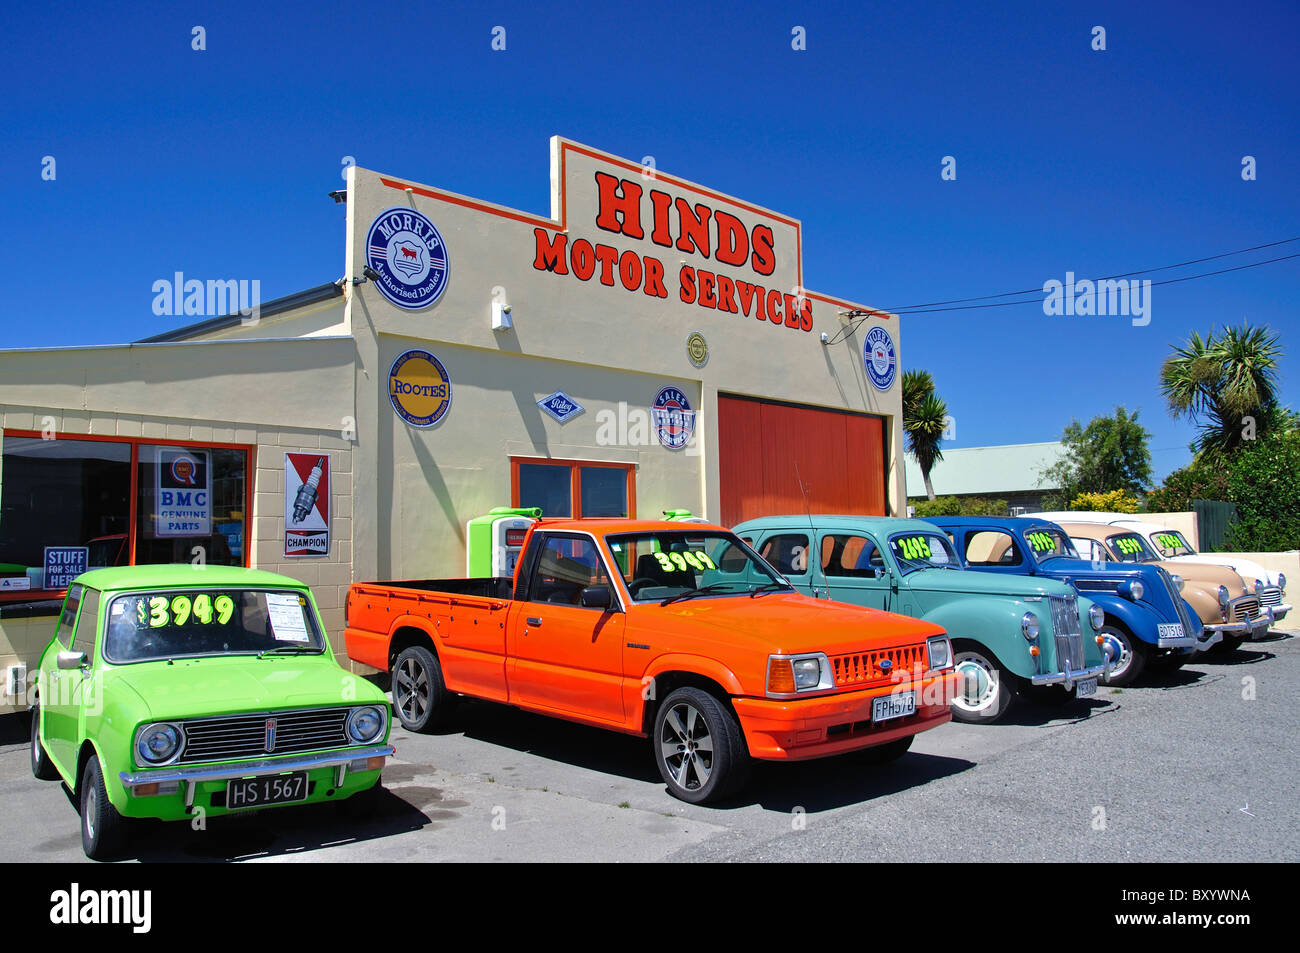 Vintage Cars For Sale Hinds Motor Services Main South Road Hinds Stock Photo Alamy